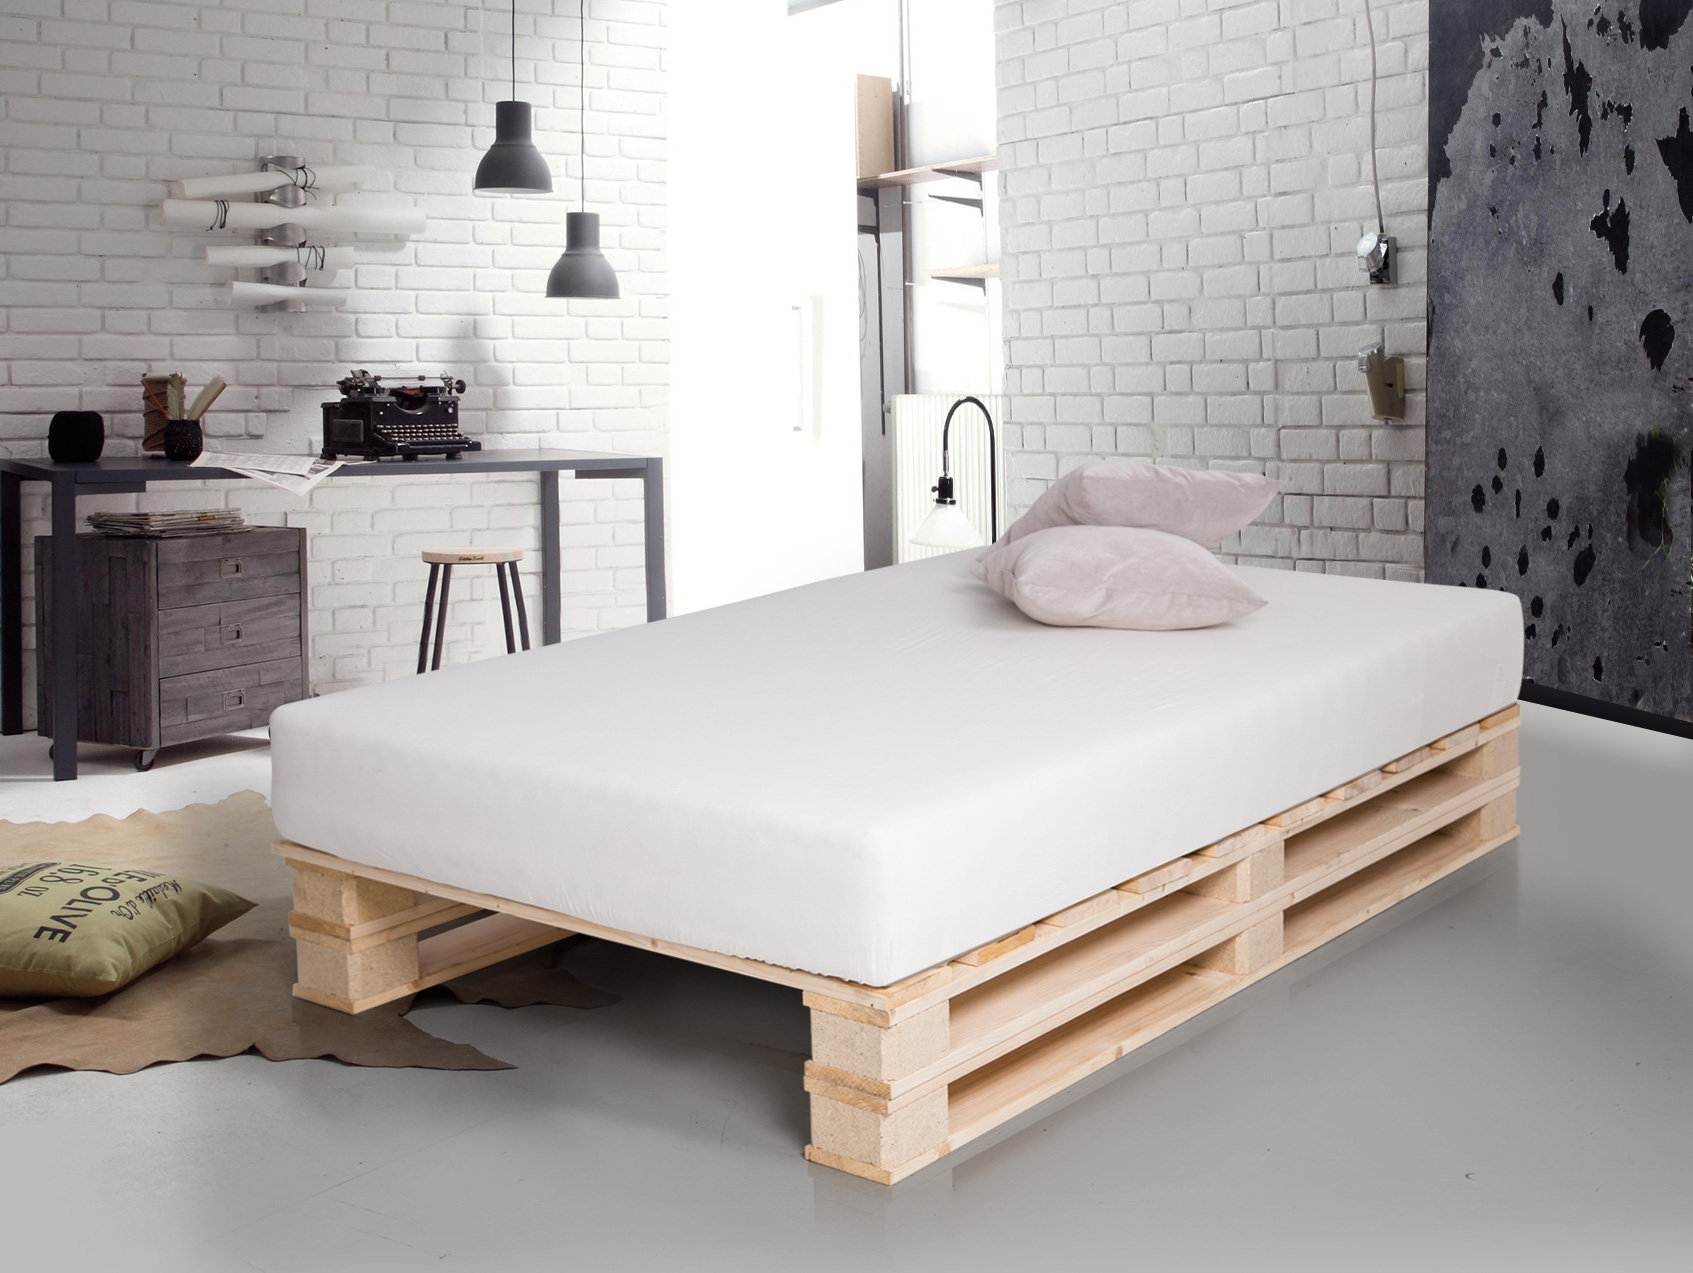 paletti duo massivholzbett aus paletten 120 x 200 cm fichte natur. Black Bedroom Furniture Sets. Home Design Ideas